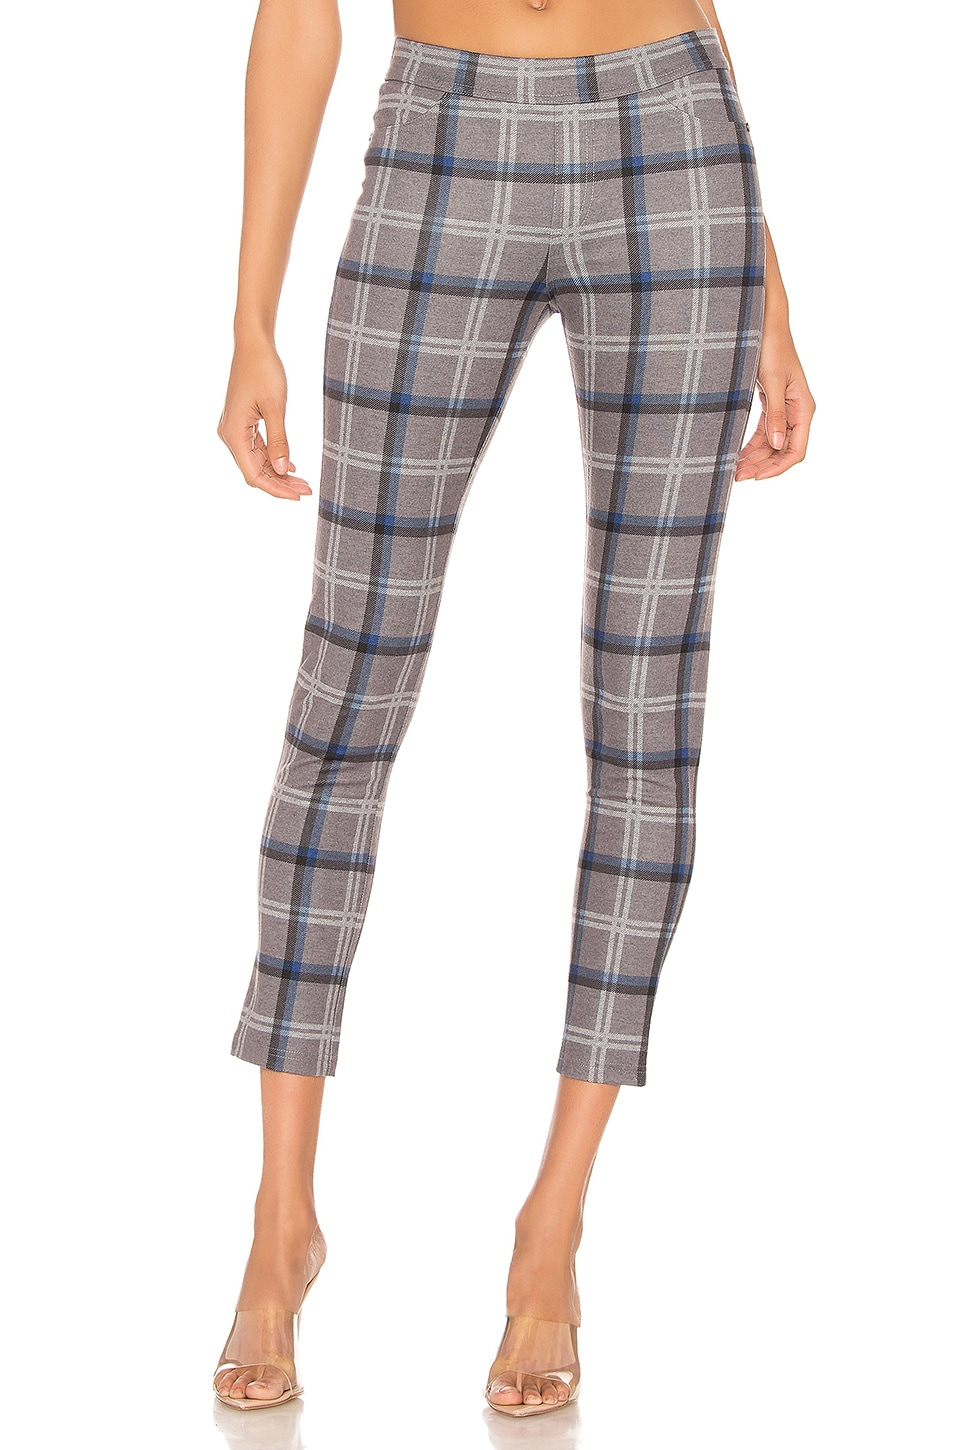 Chaser Skinny Pants in Grey Plaid